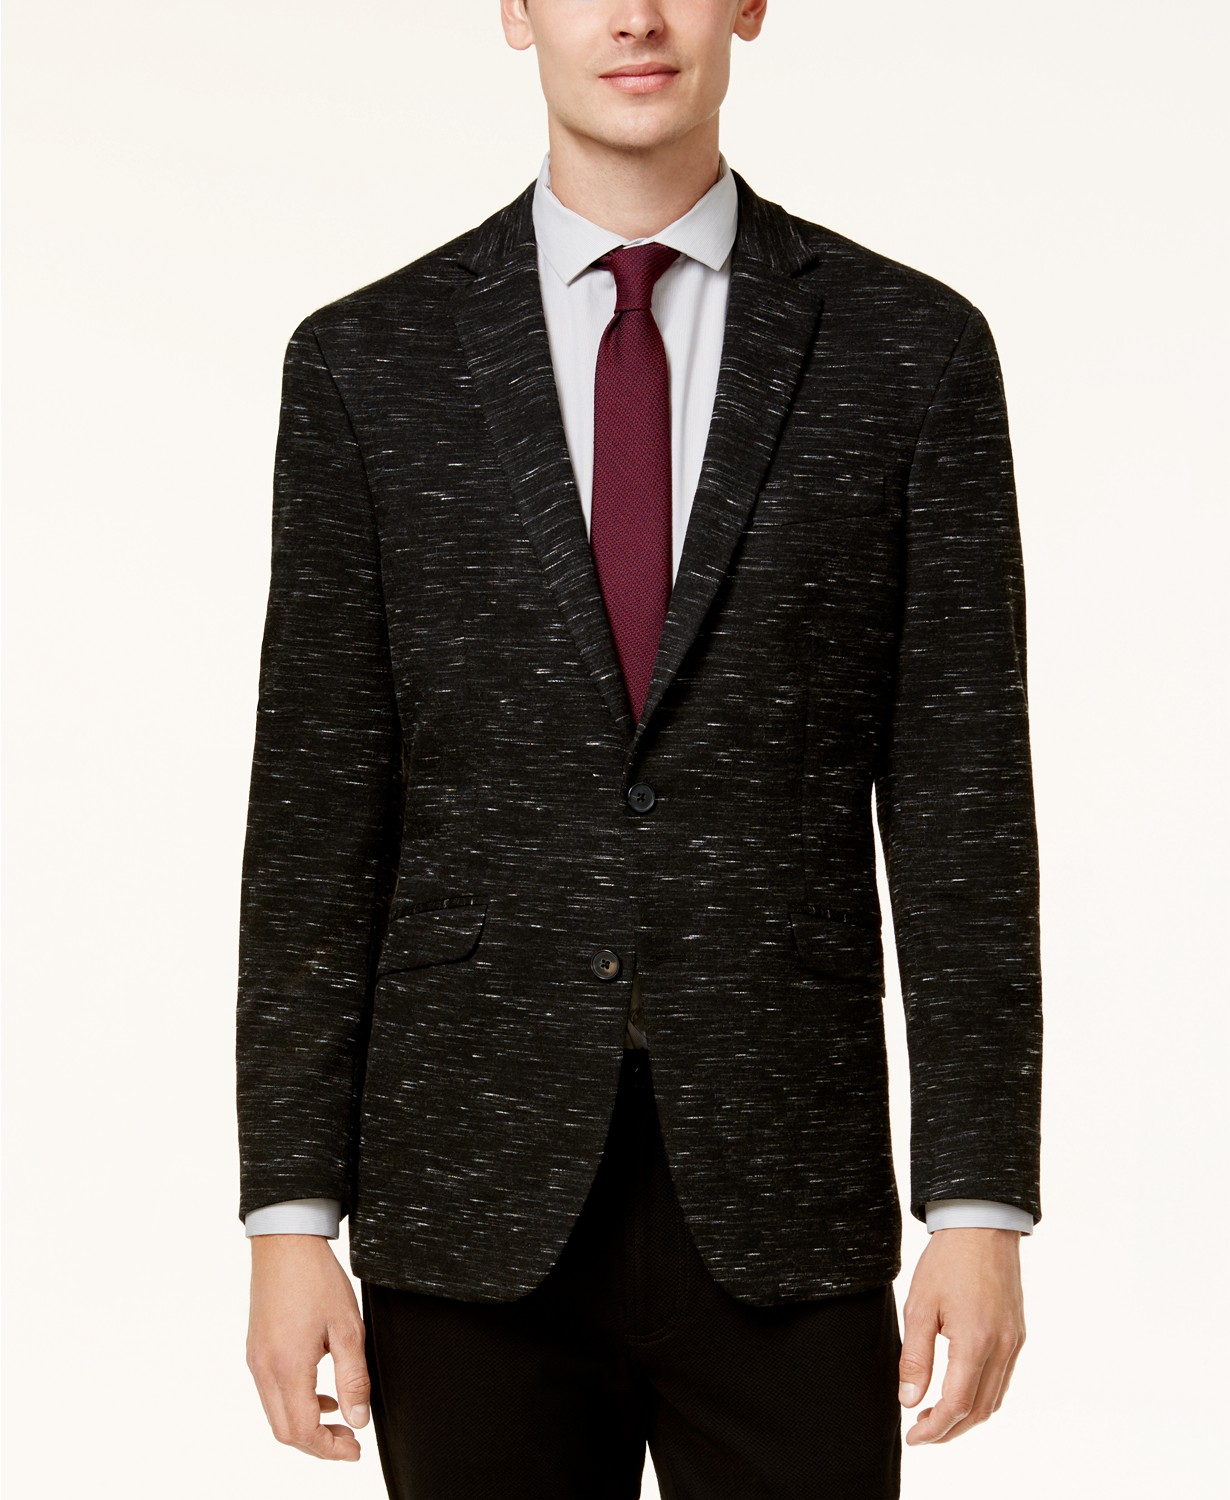 Kenneth Cole Reaction Men's Slim-Fit Dark Gray Soft Tailored Sport Coat + $3 Charity Savings Pass